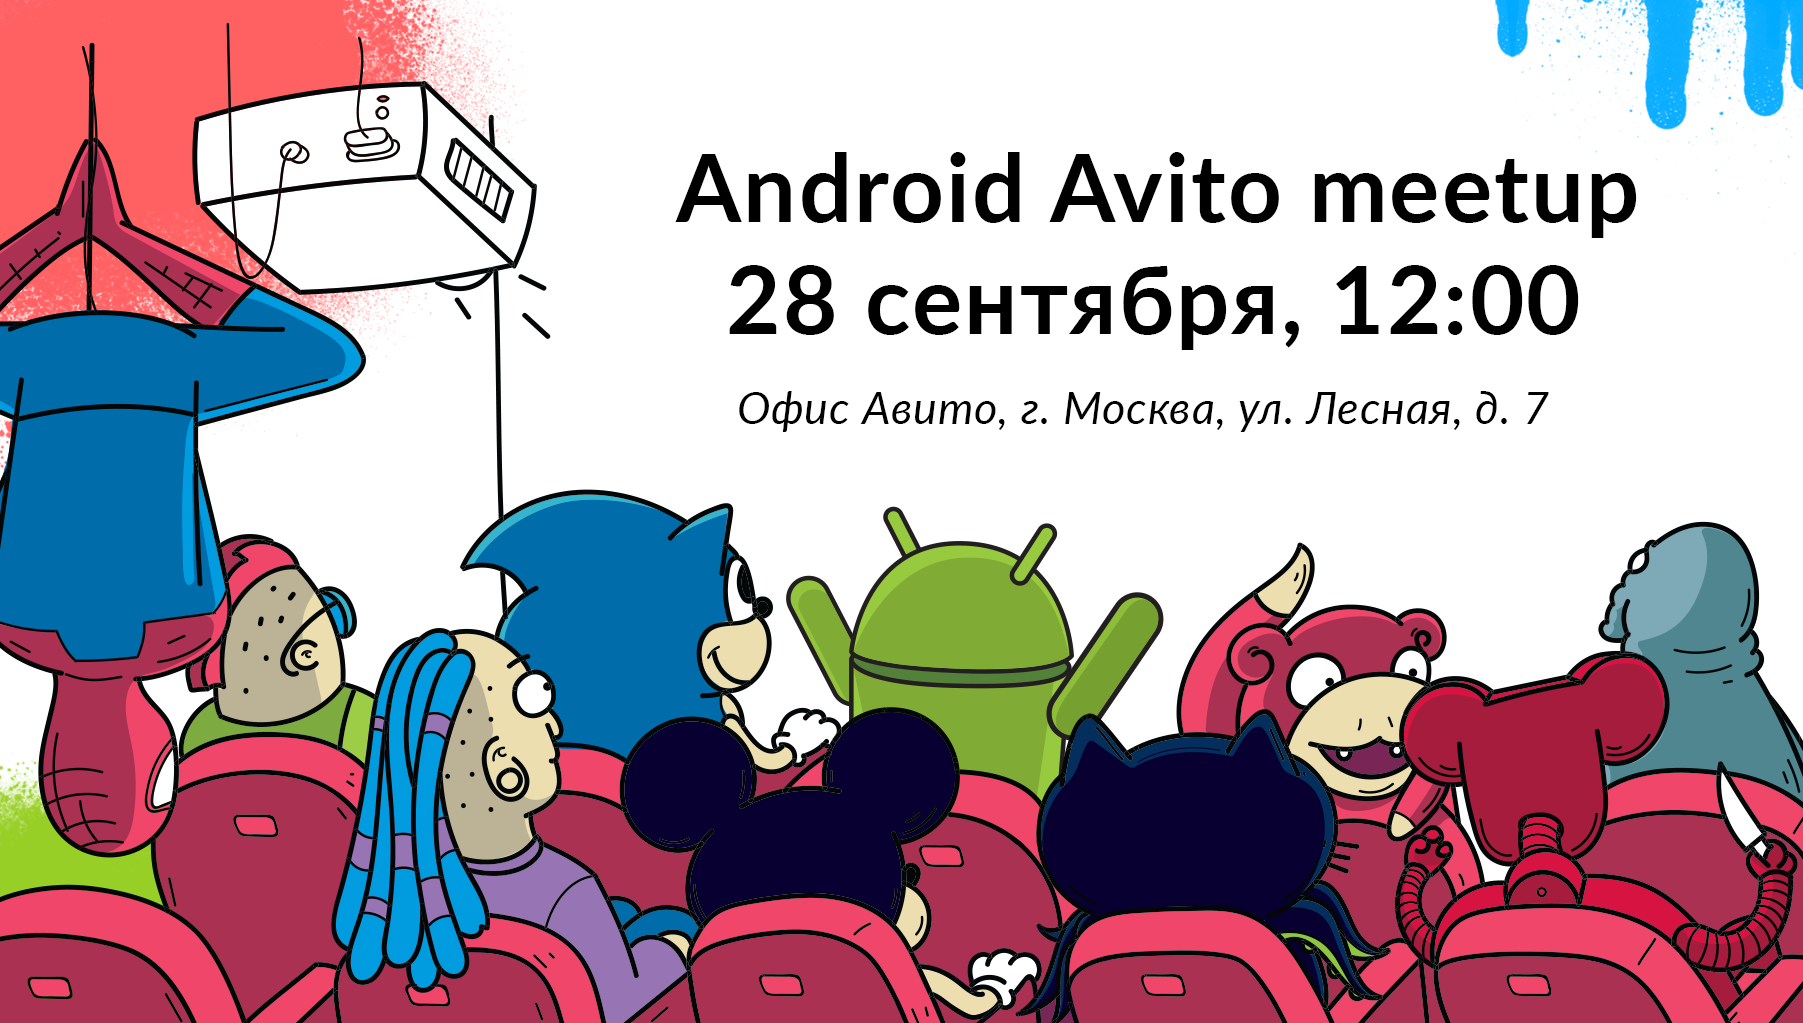 Android Avito Meetup